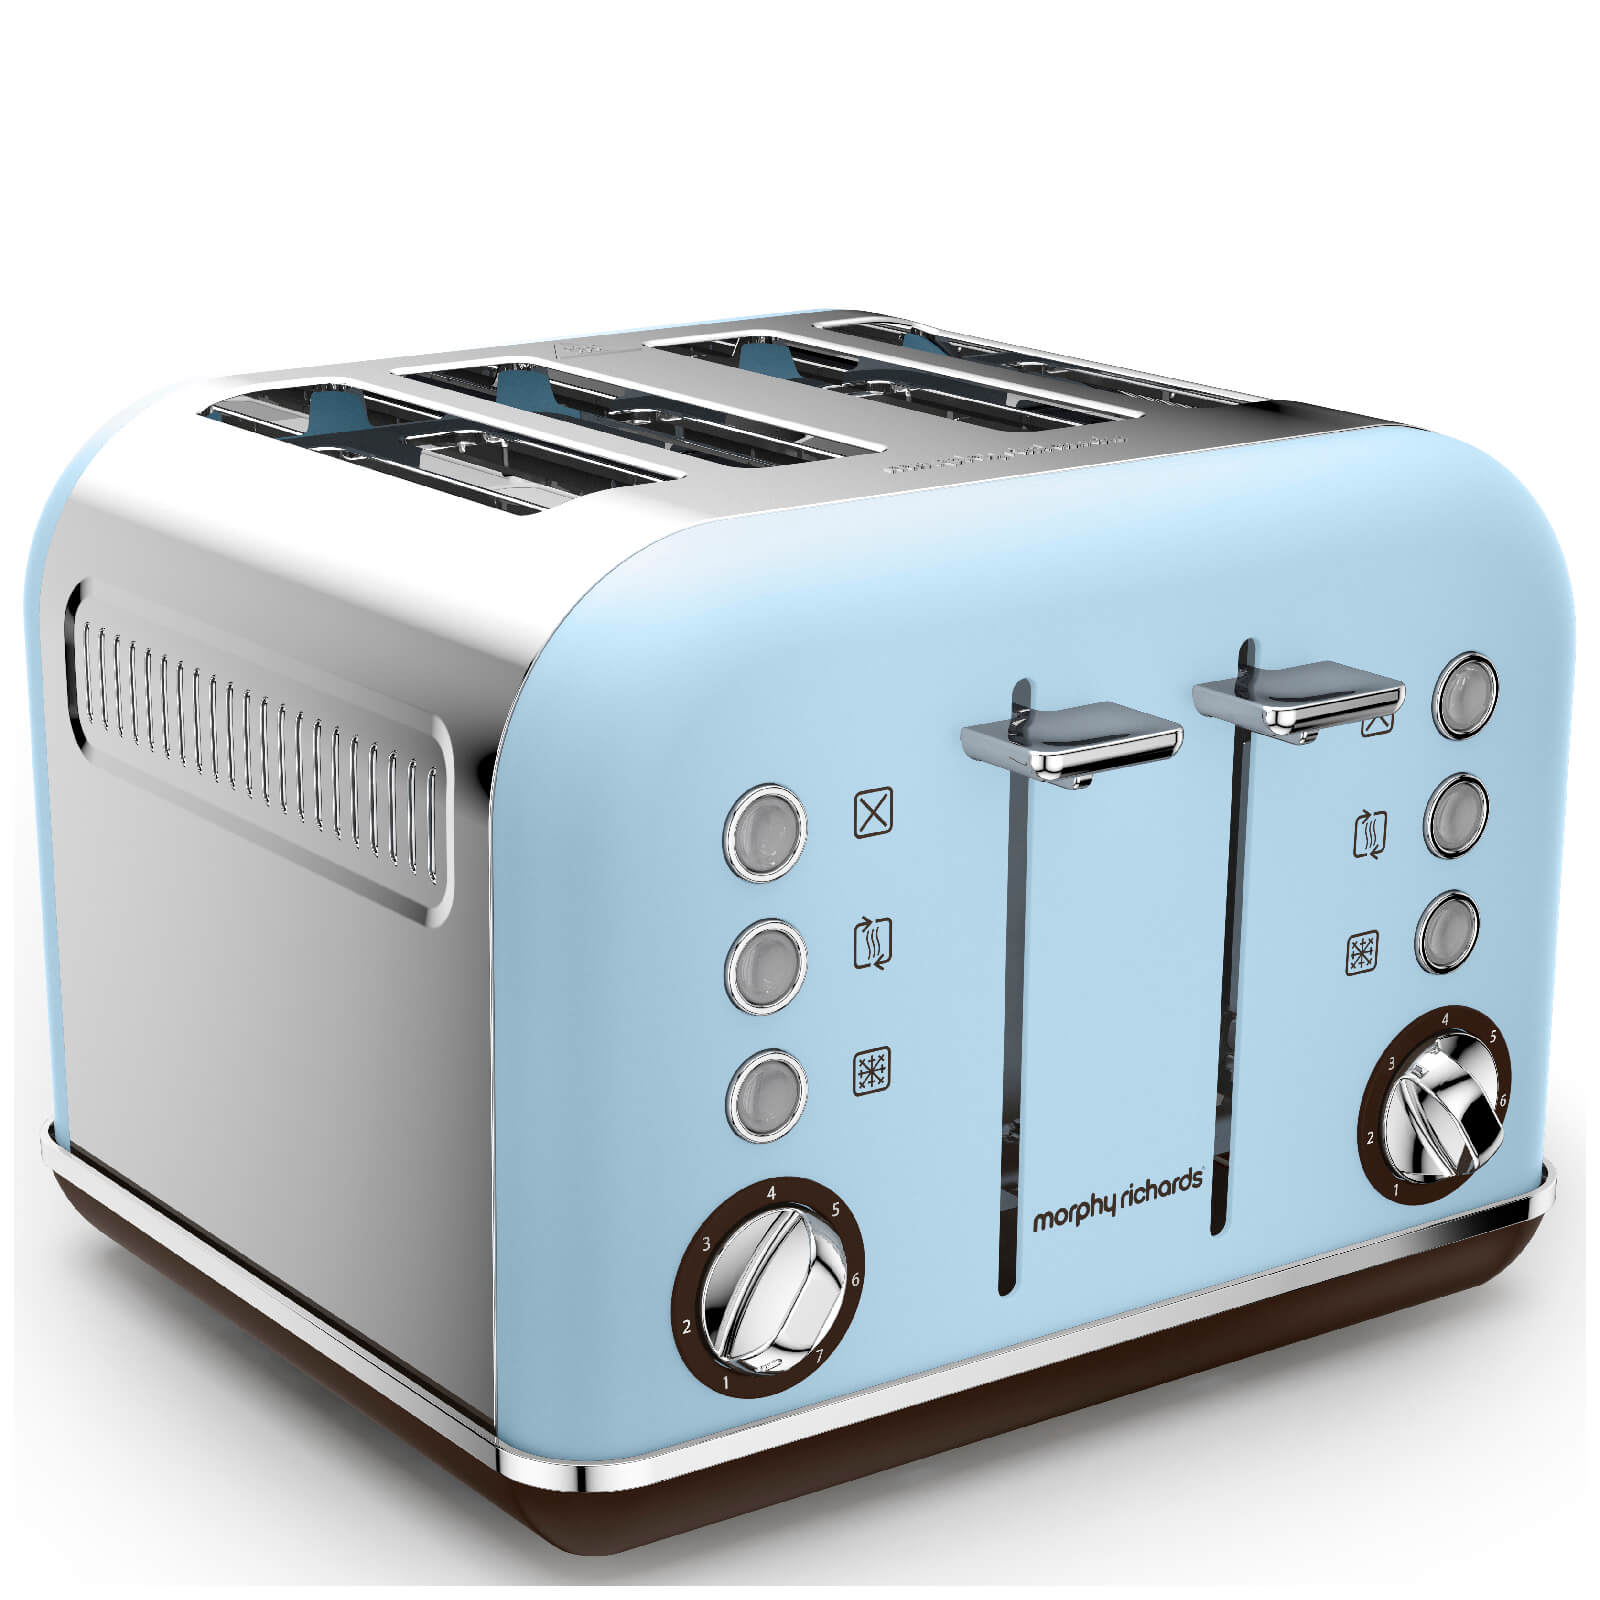 Morphy Richards 242100 Accents 4 Slice Premium Toaster - Azure